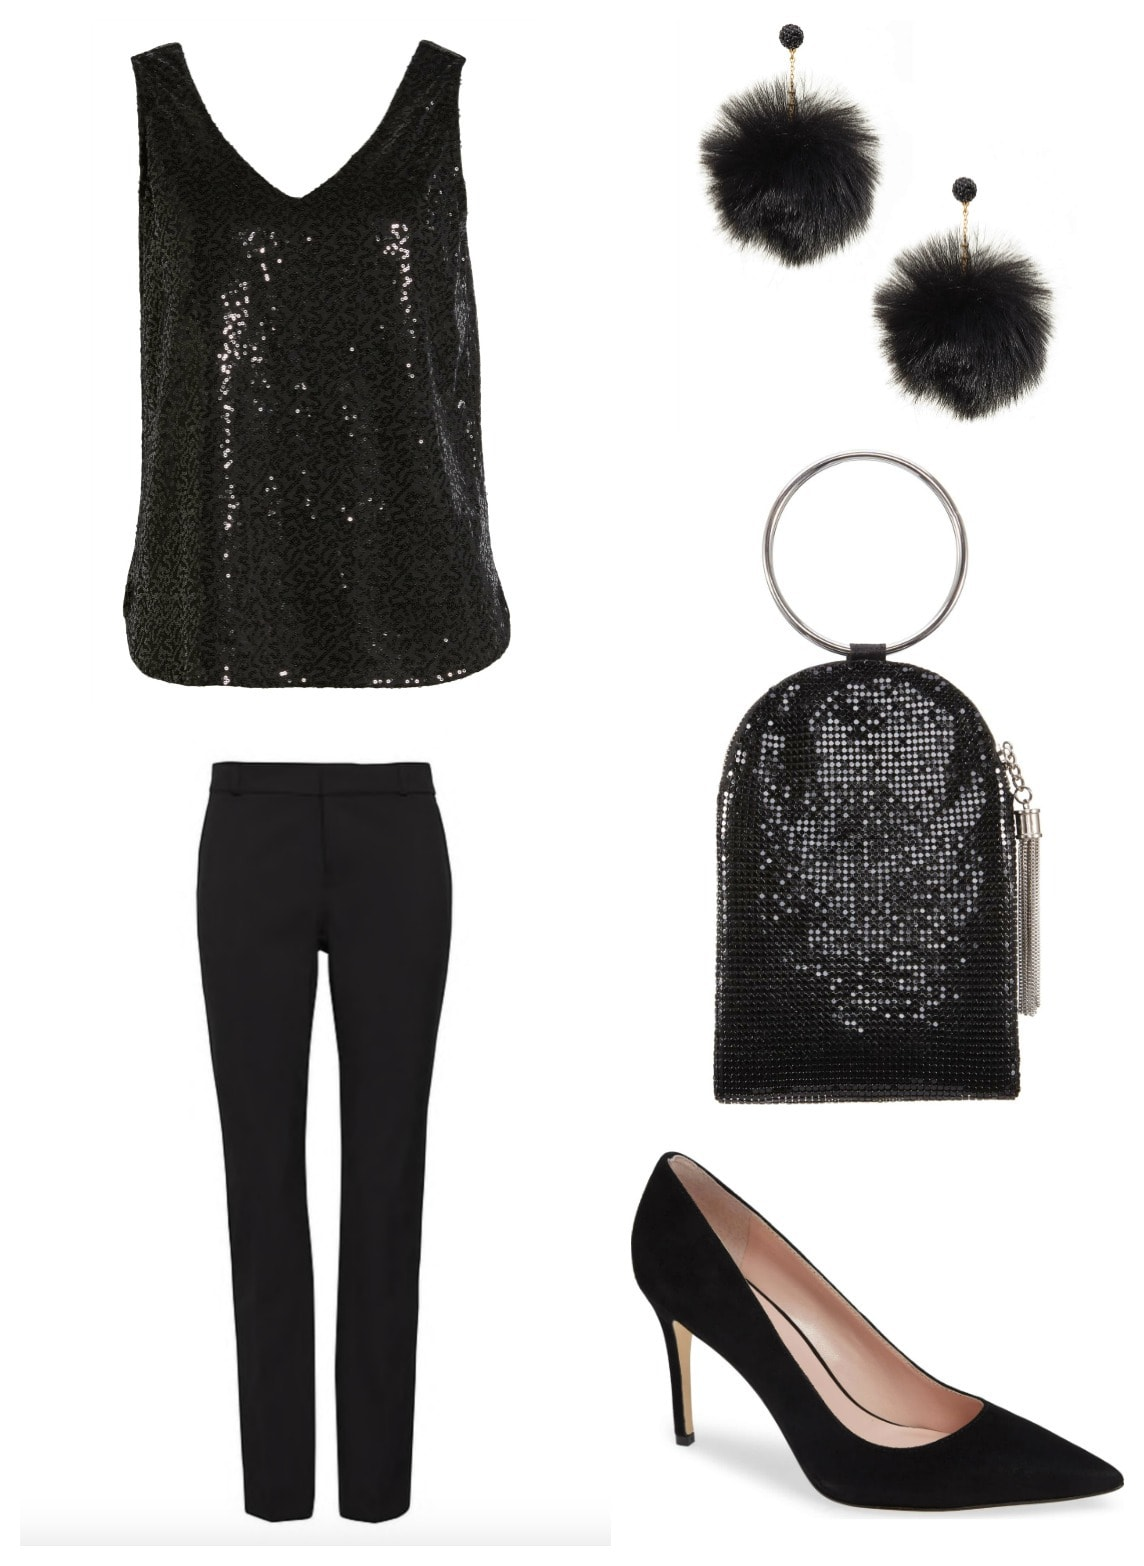 Black cocktail outfit with pants